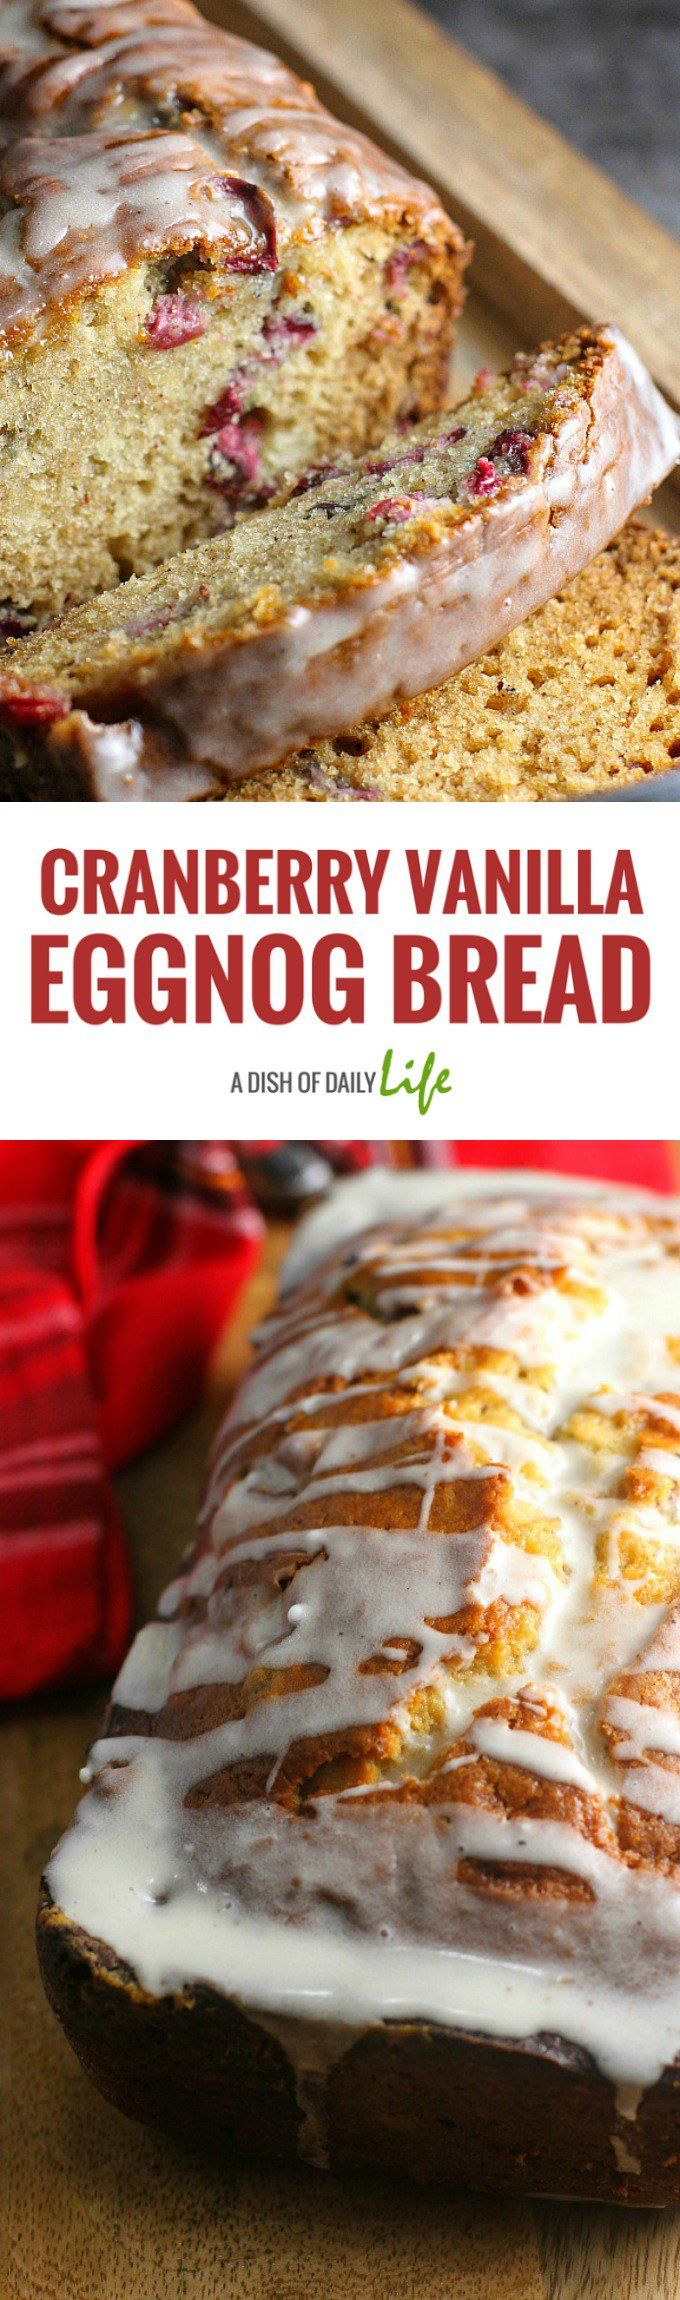 Cranberry Vanilla Eggnog Bread - This scrumptious bread is perfect for a holiday breakfast, brunch, dessert...or even as an anytime snack! Best of all, it's easy to make as well! #eggnog #bread